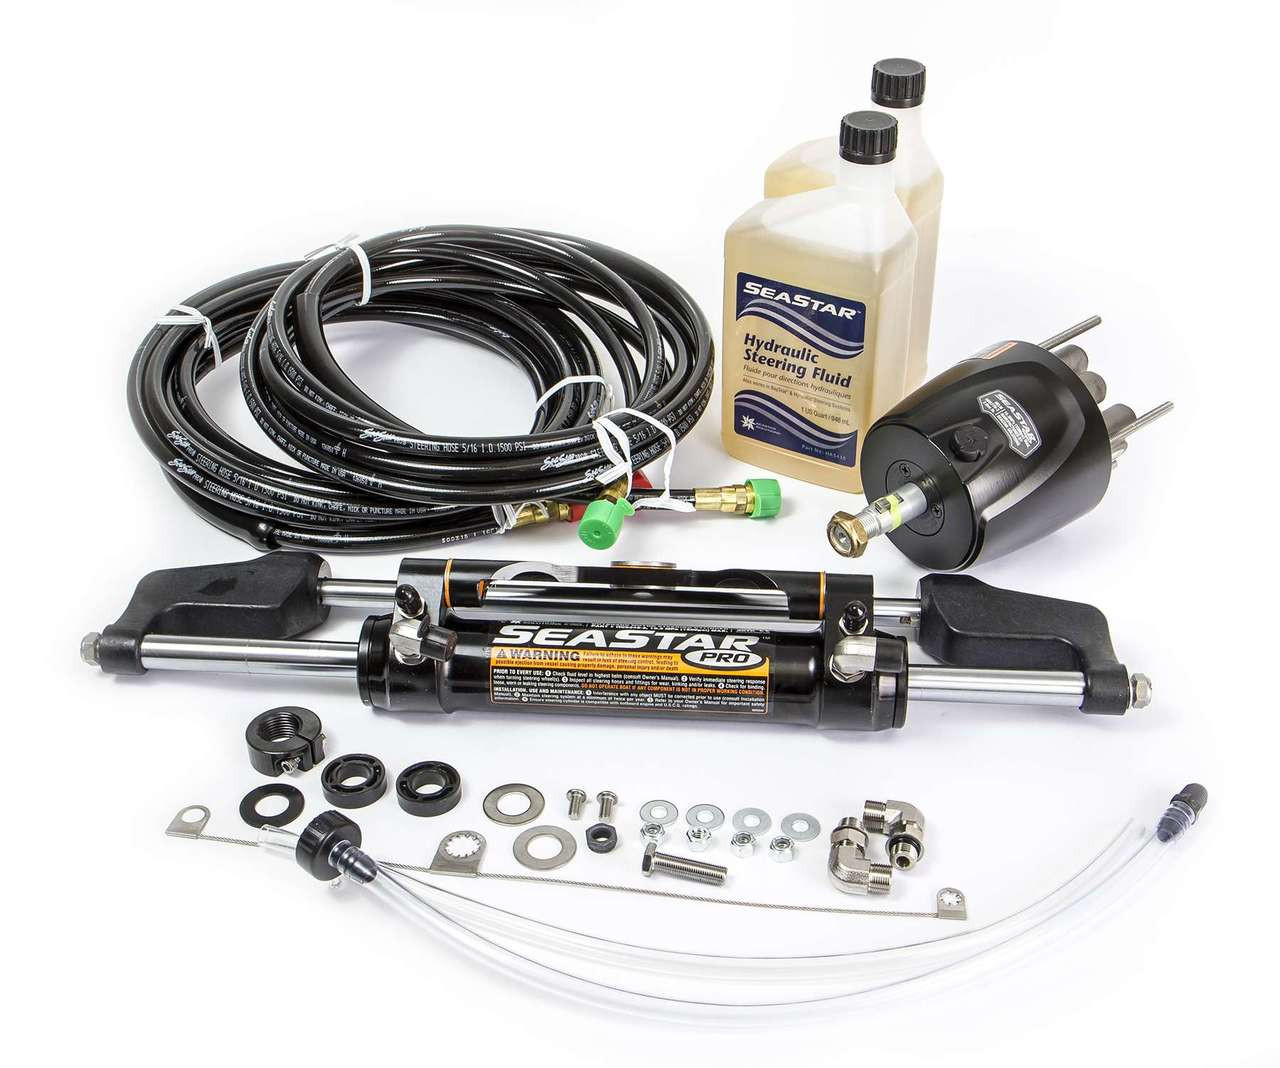 SeaStar HK7520A-3 PRO Hydraulic Steering System Kit w/ 20ft Hoses